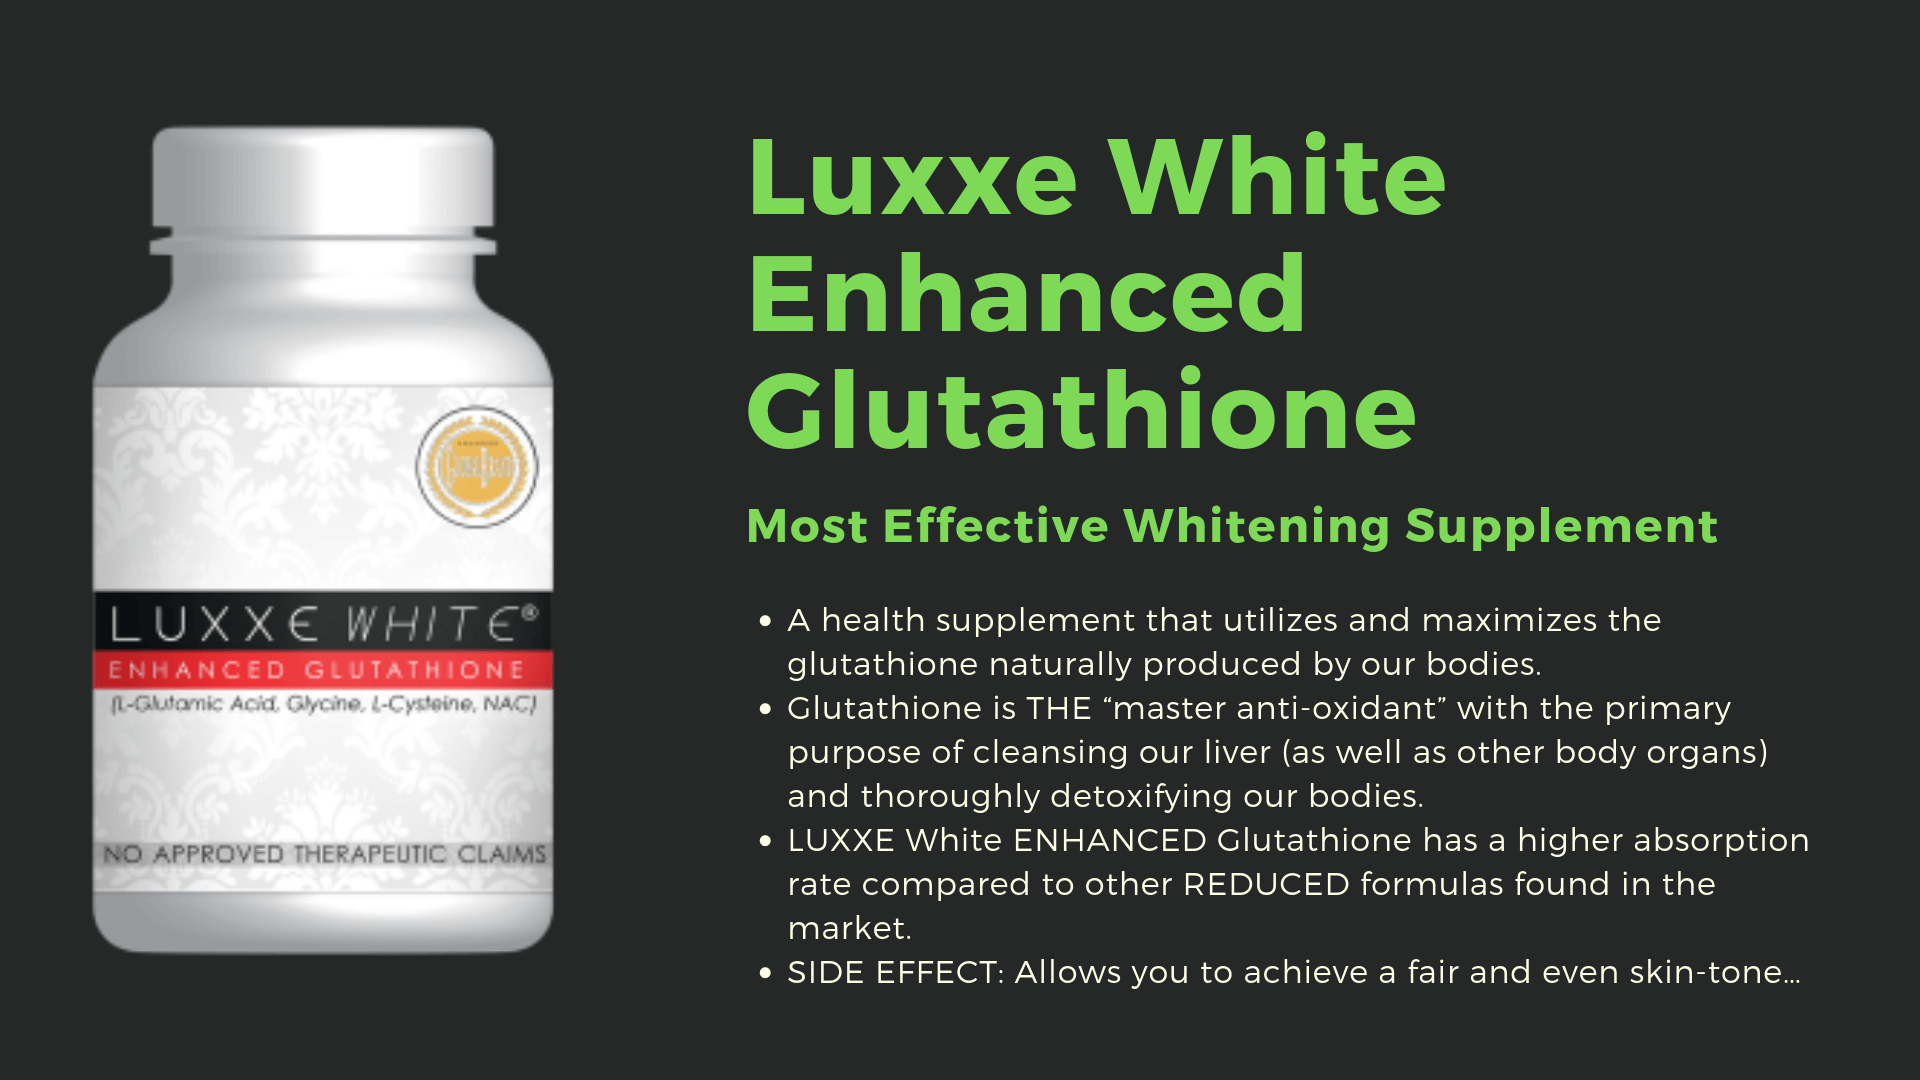 luxxe white enhanced glutathione image details